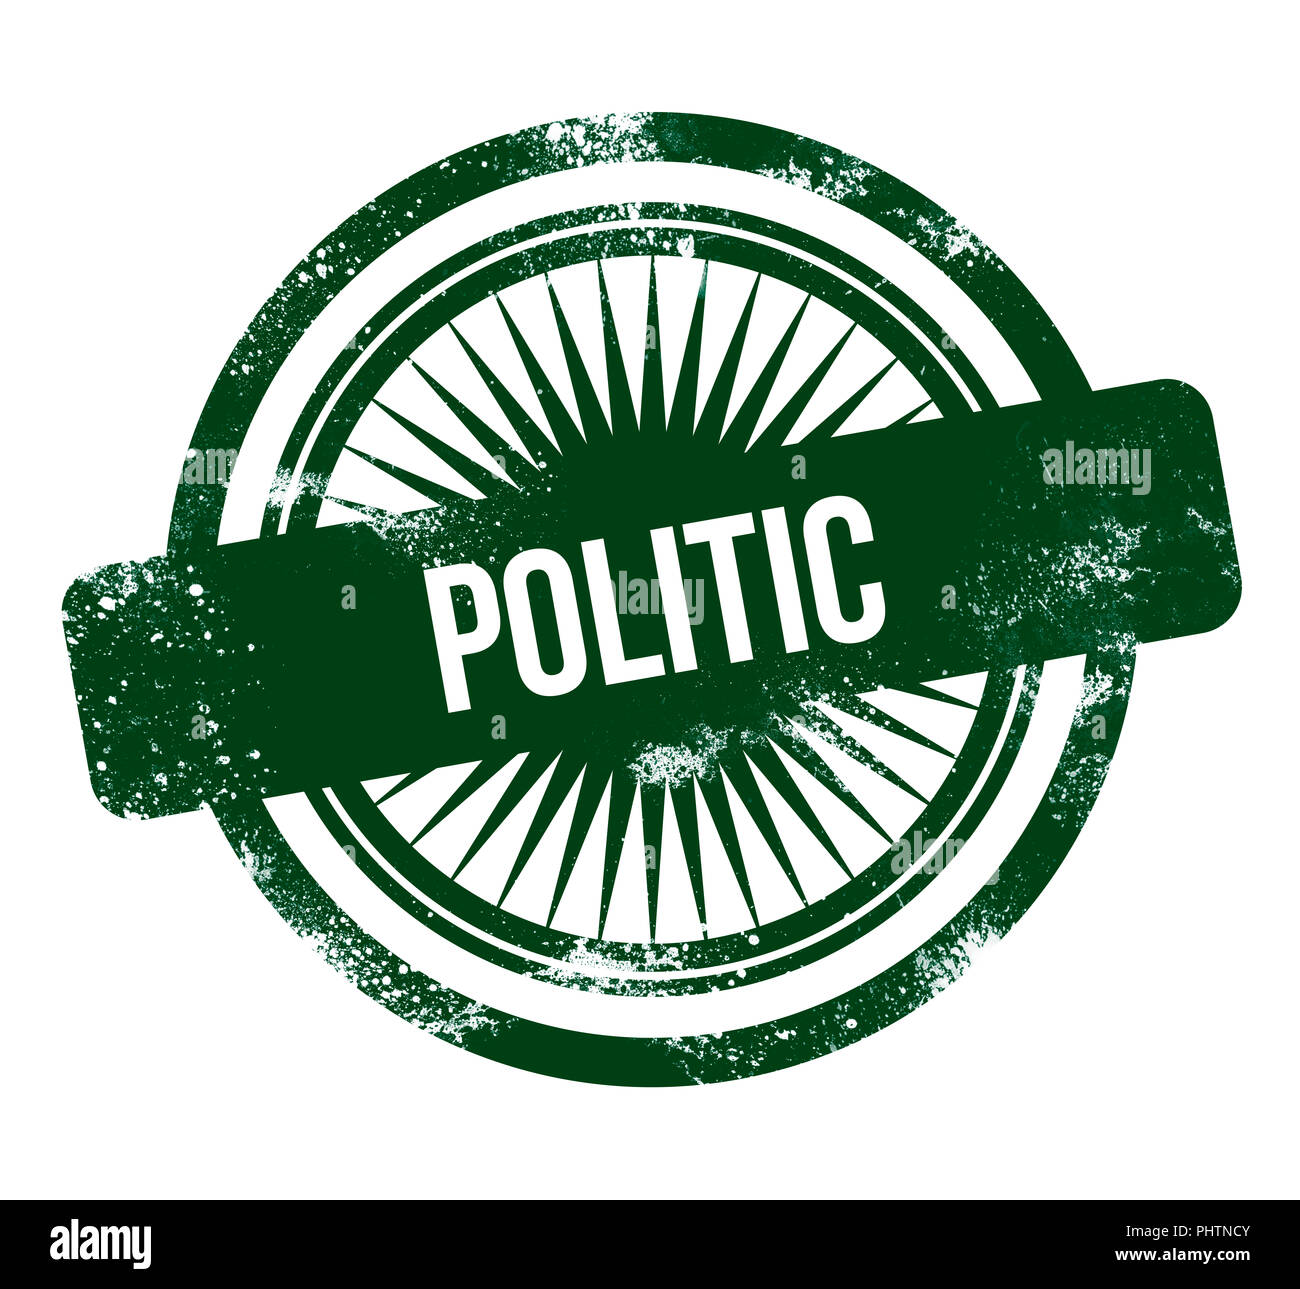 politic - green grunge stamp - Stock Image